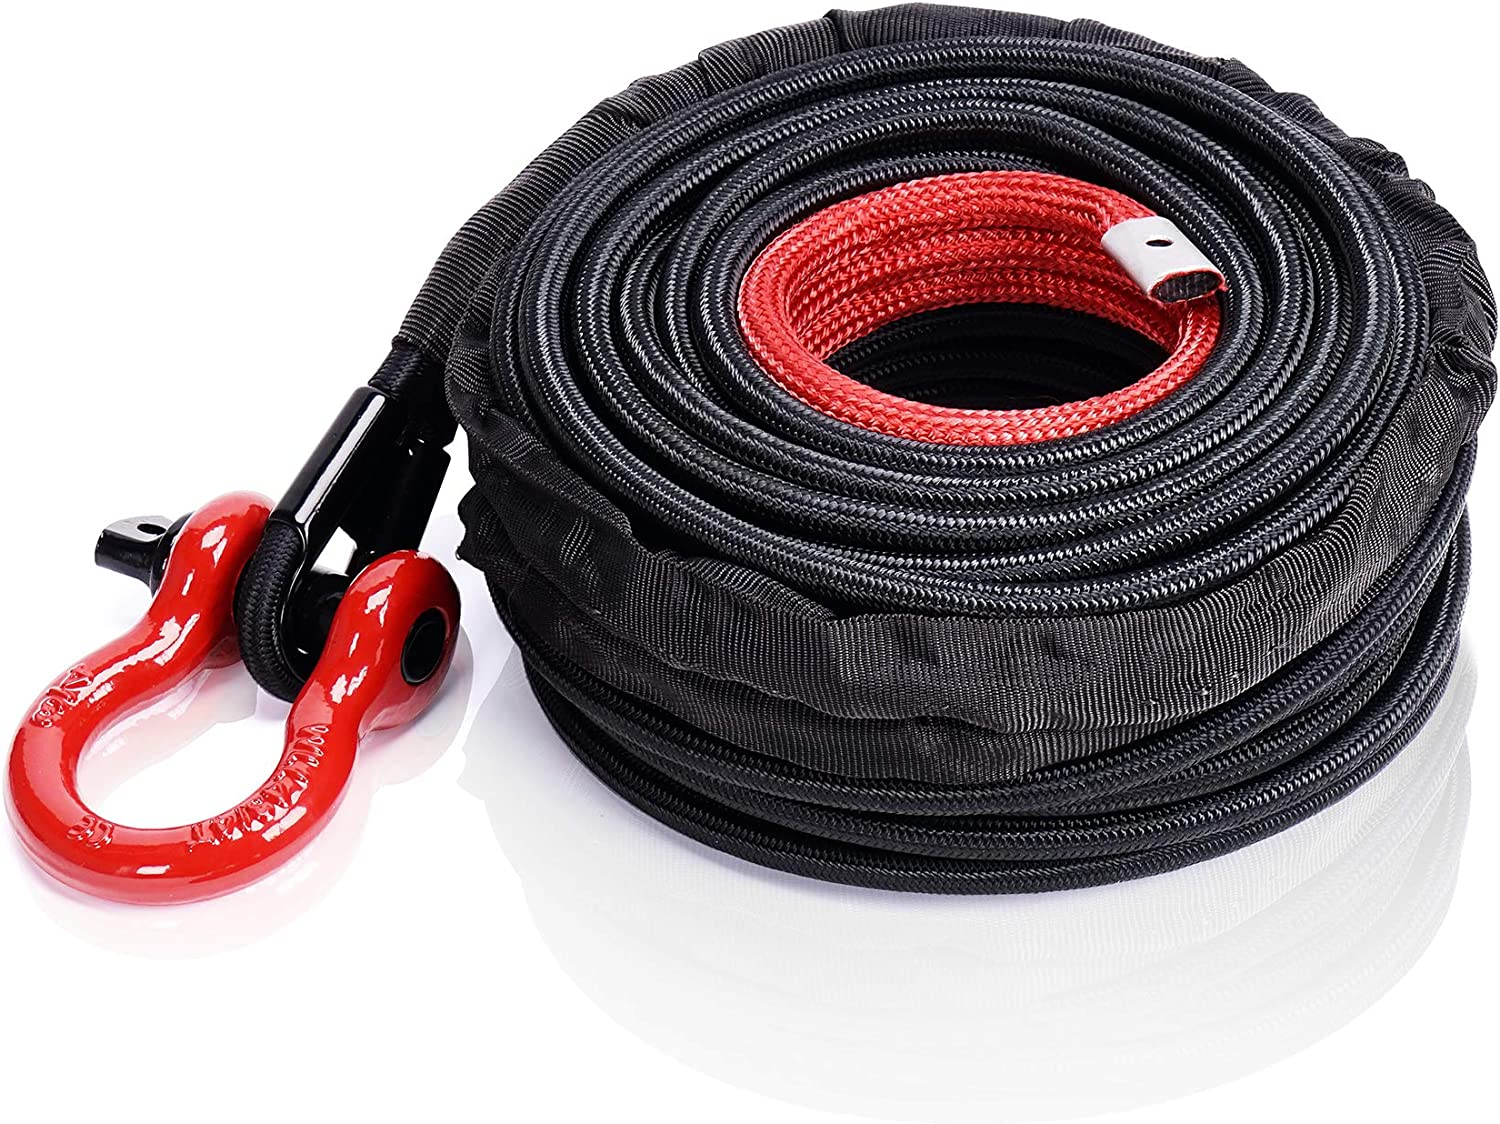 ORCISH Synthetic Winch Rope 3//8 x 92ft with Hook and Protective Sleeve 23809 LBs for 4WD Off-Road Trunk Car Recovery Accessory